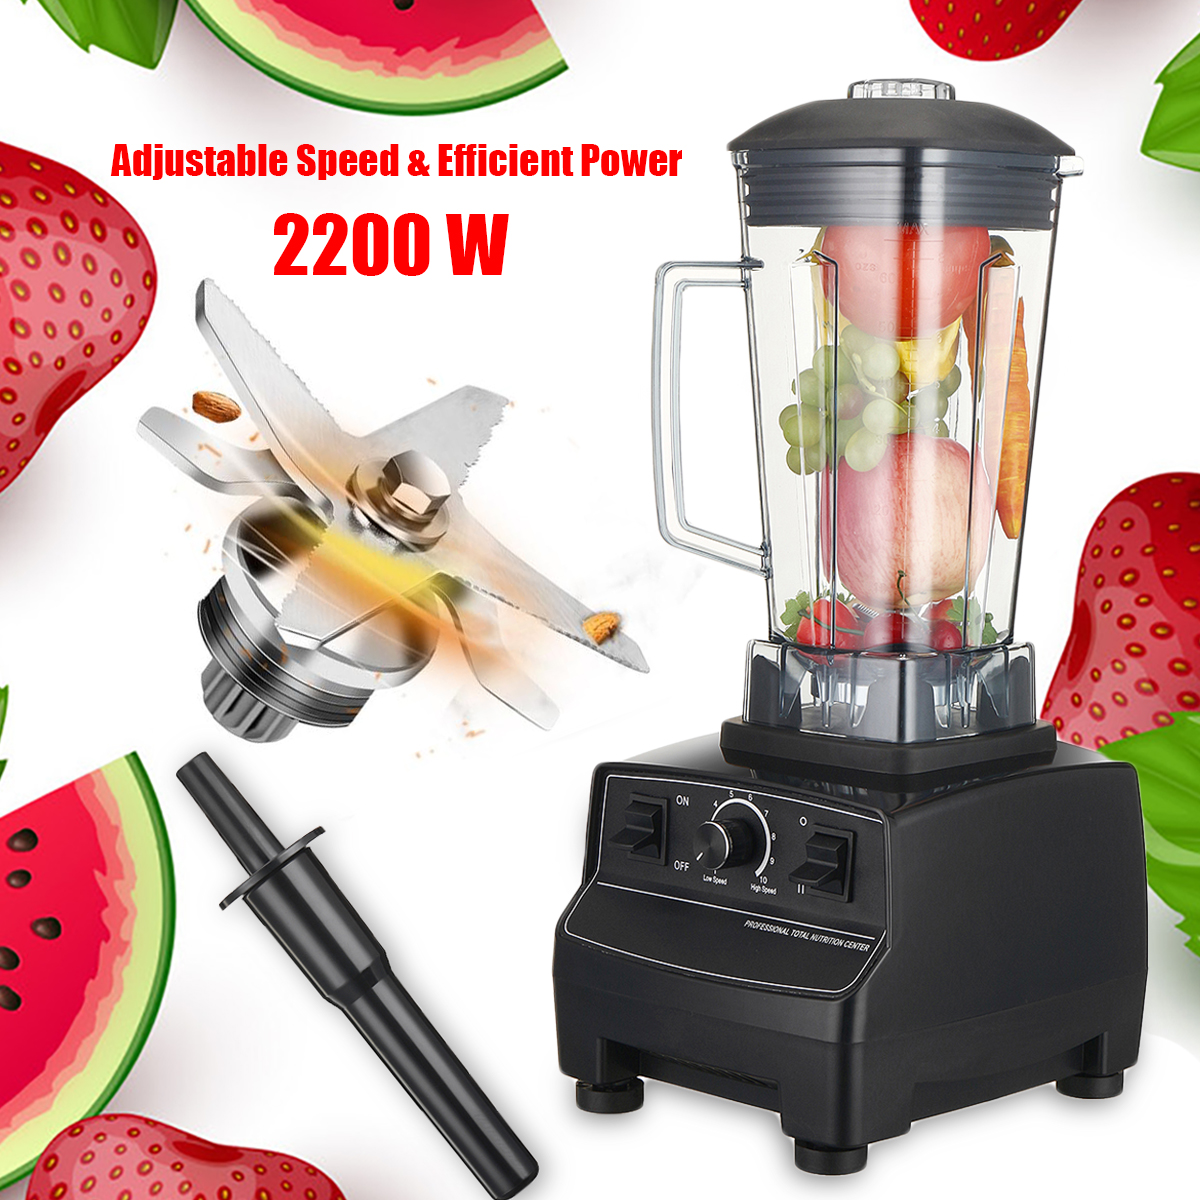 2L 2200W 3HP 110V US 6 Blades 45000-peak Blenders 10 Adjustable Speed Hardened Stainless Steel Blades Easy Metal Connect System стоимость